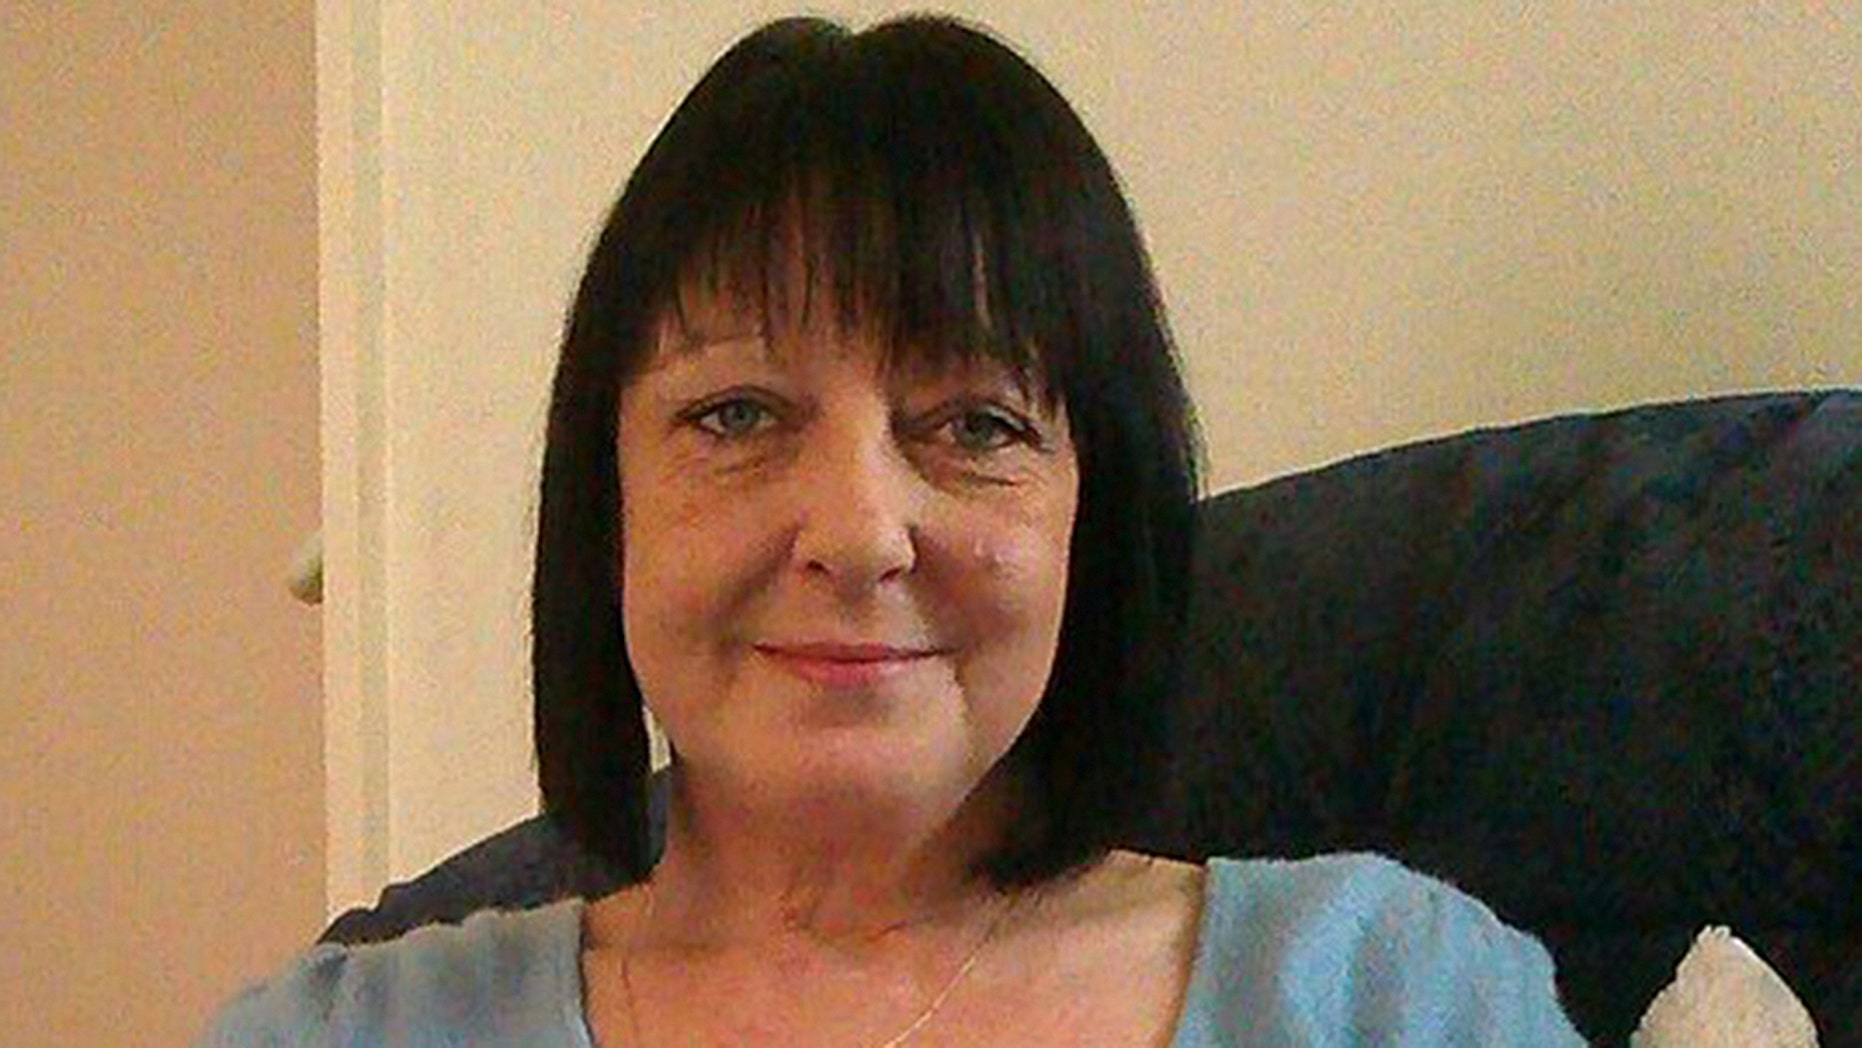 51-year-old Helen Butcher has been jailed for 21 weeks for the June 2017 incident.